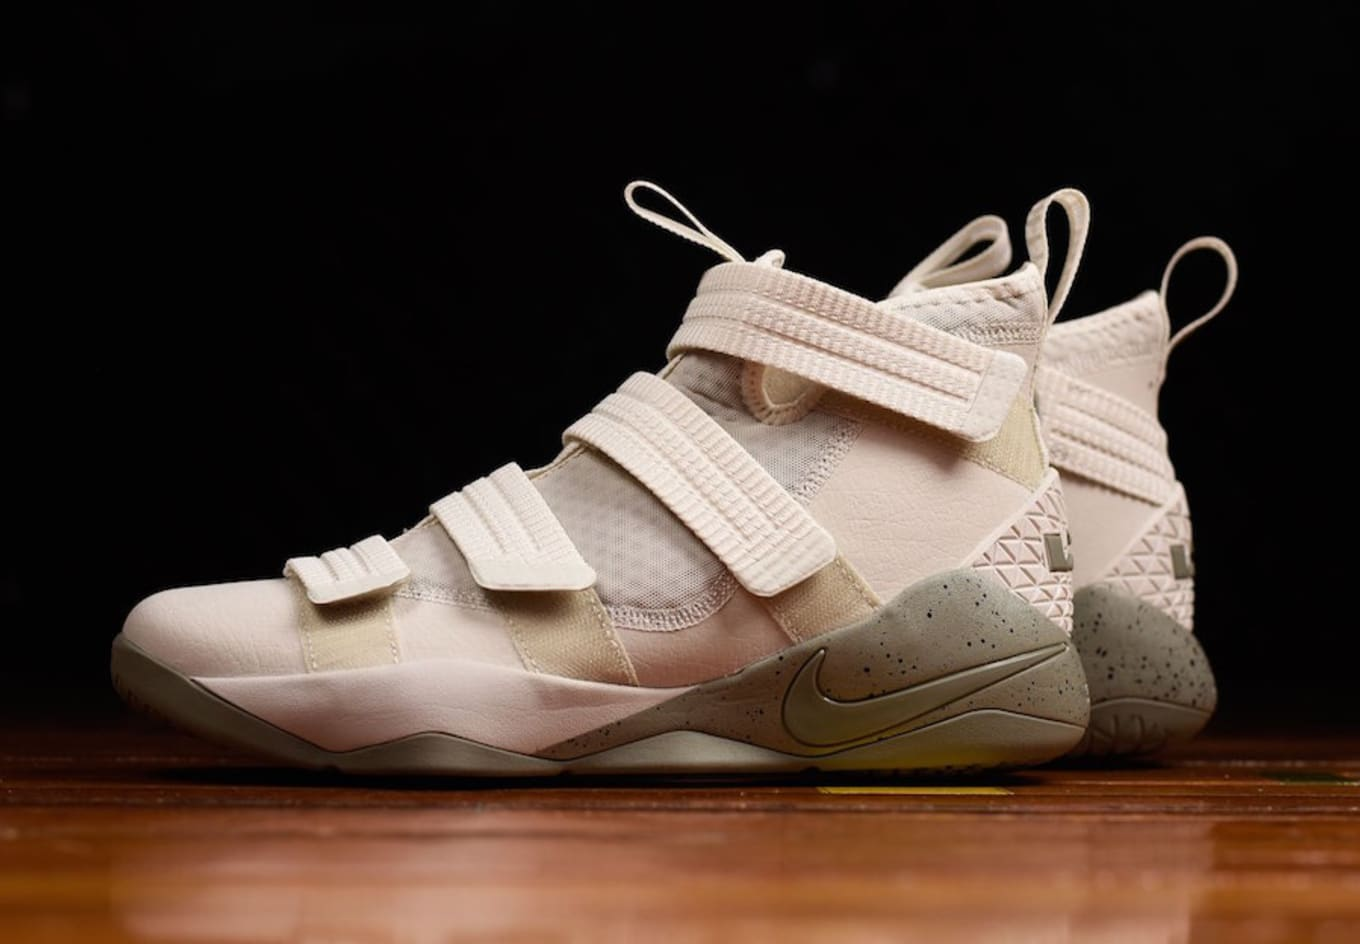 fdb0d9555d7e Nike LeBron Soldier 11 Light Bone Dark Stucco Release Date 897646 ...